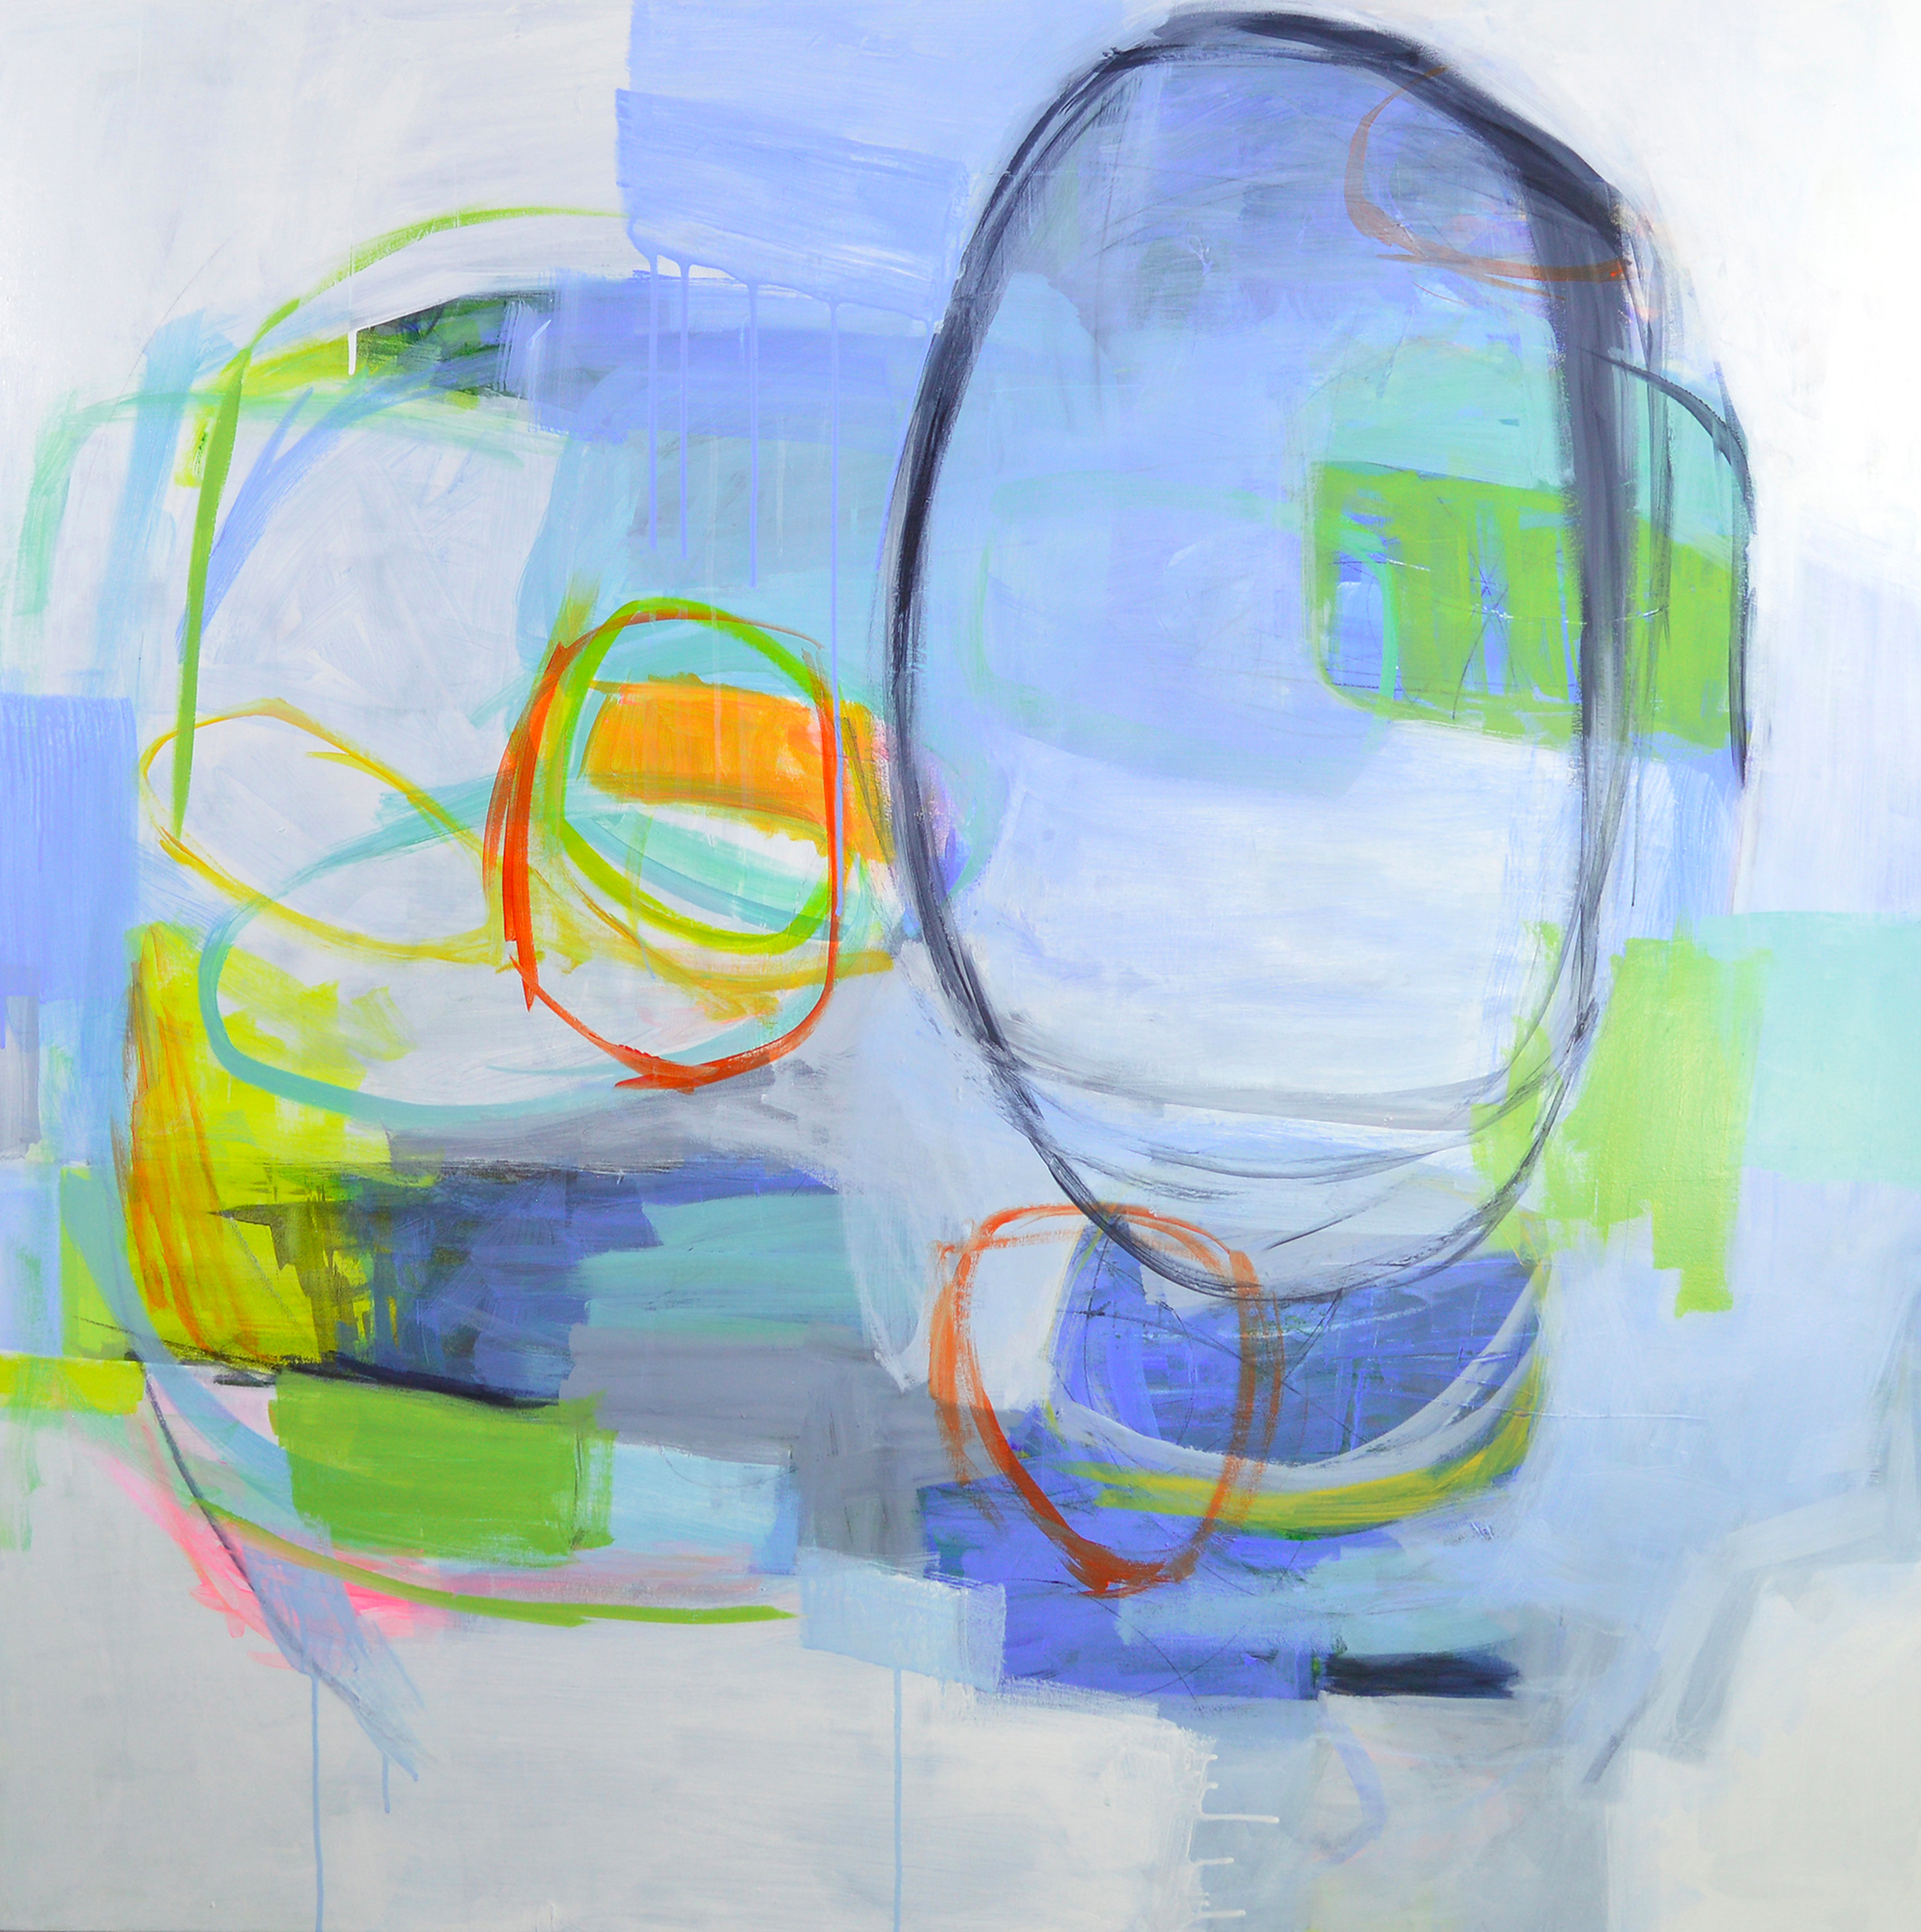 Shimmering Water by Julia Rymer | ArtworkNetwork.com